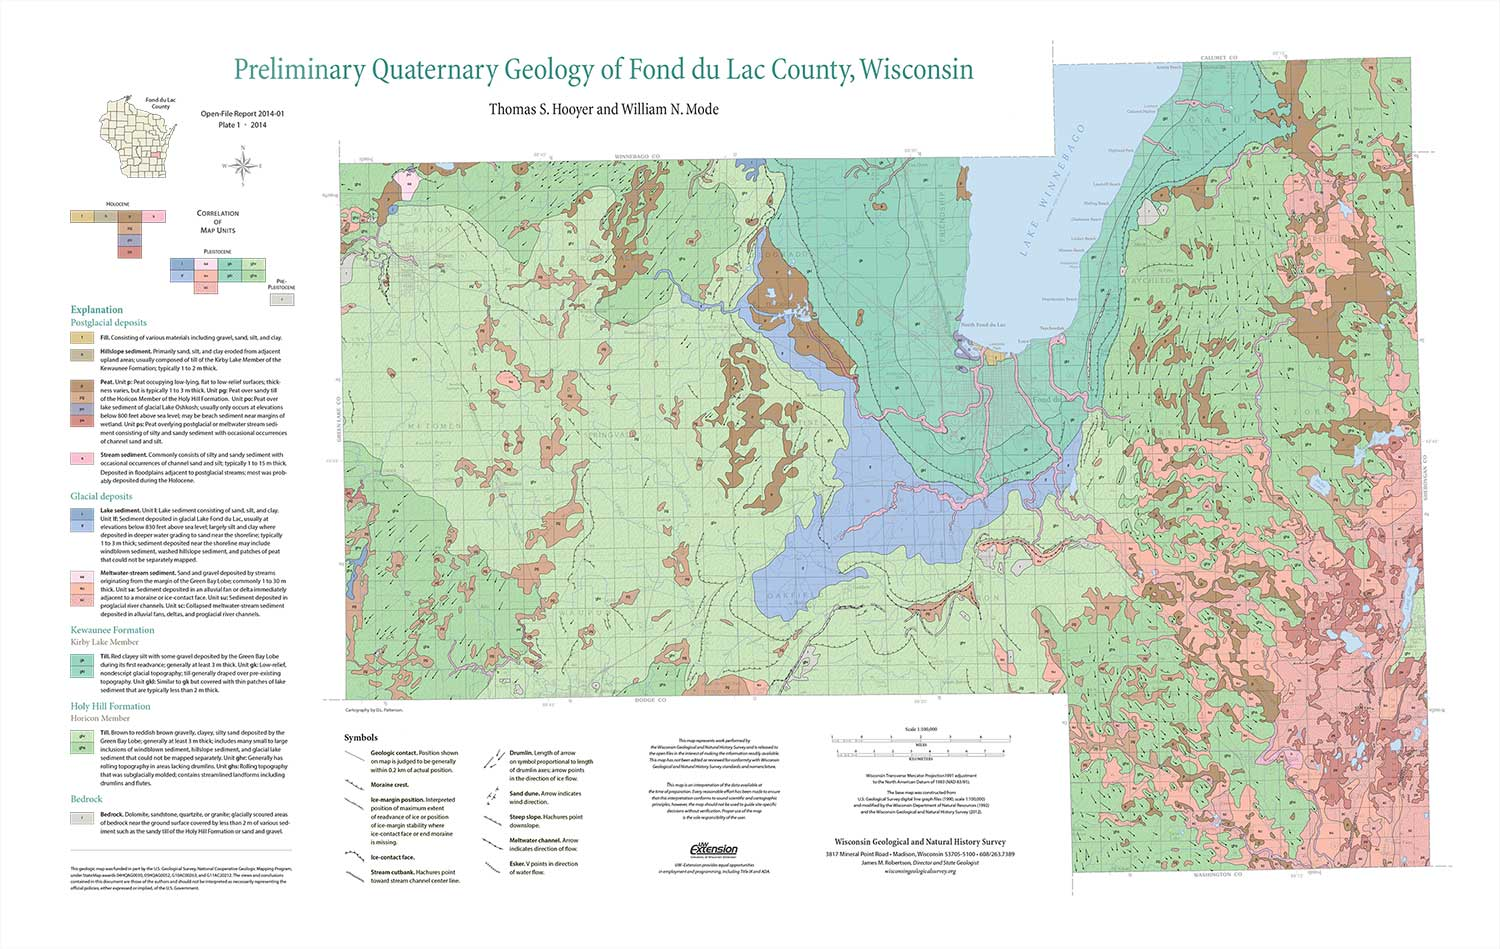 Wisconsin Geological & Natural History Survey » New ... on columbia co wi map, rock county wi map, fond du lac county wi map, falls marinette county wi map, dunn county snowmobile map, fond du lac, kenosha county, dane county, door county wi map, rock county, vernon county, la crosse, racine county, florence county wi map, town of dunn wi map, door county, city of racine wi map, iron ridge map, monroe county, wisconsin map, marinette county, jefferson county wi map, columbia county, milwaukee county, washington county, dane county wi map, menominee county wi map, sauk prairie wi map, kewaunee county townships map, south central wi map, jefferson county, columbia county wi map, washington county wi map, grant county, green lake wi map, waukesha county, beaver dam,